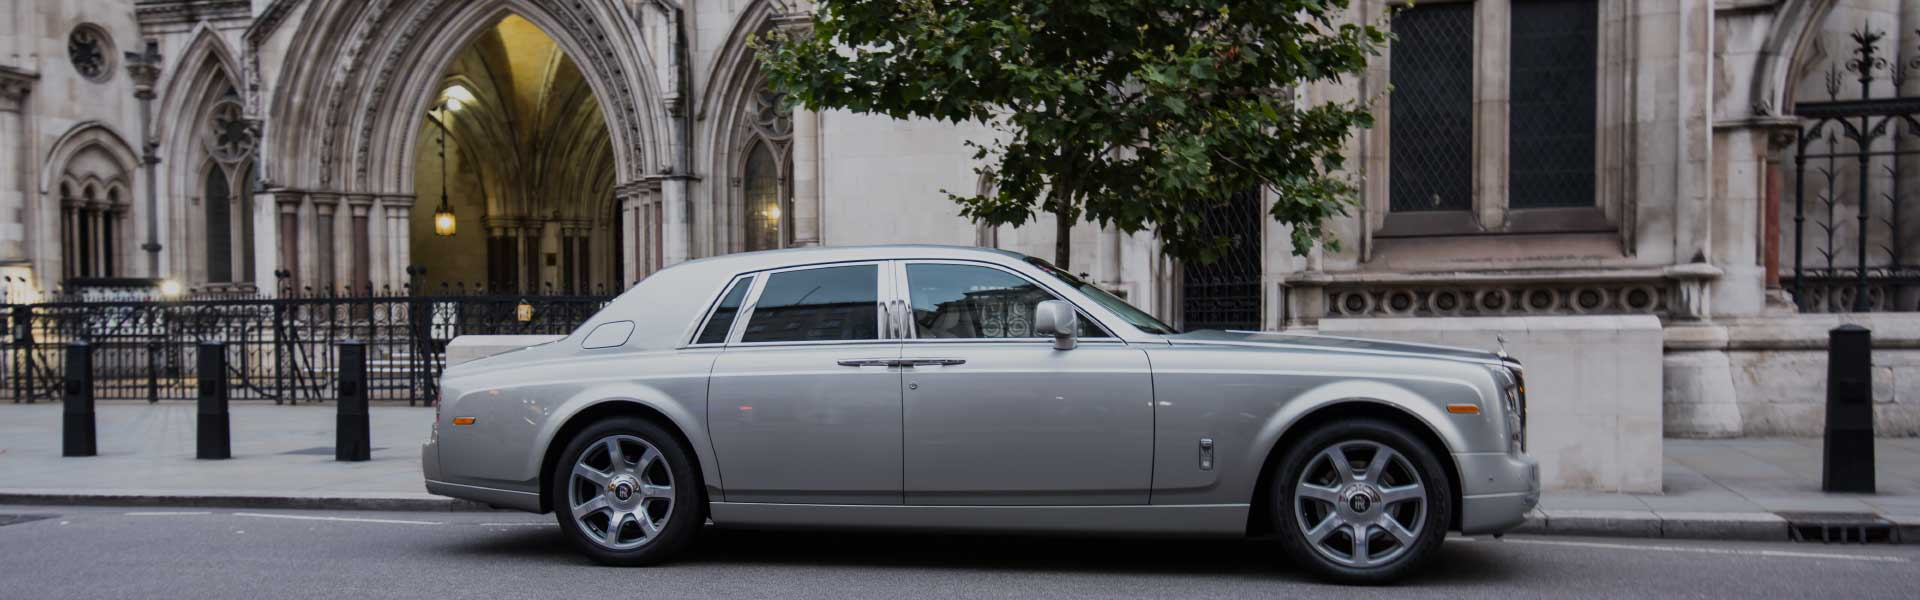 Chauffeur Driven Rolls Royce Phantom FAQs